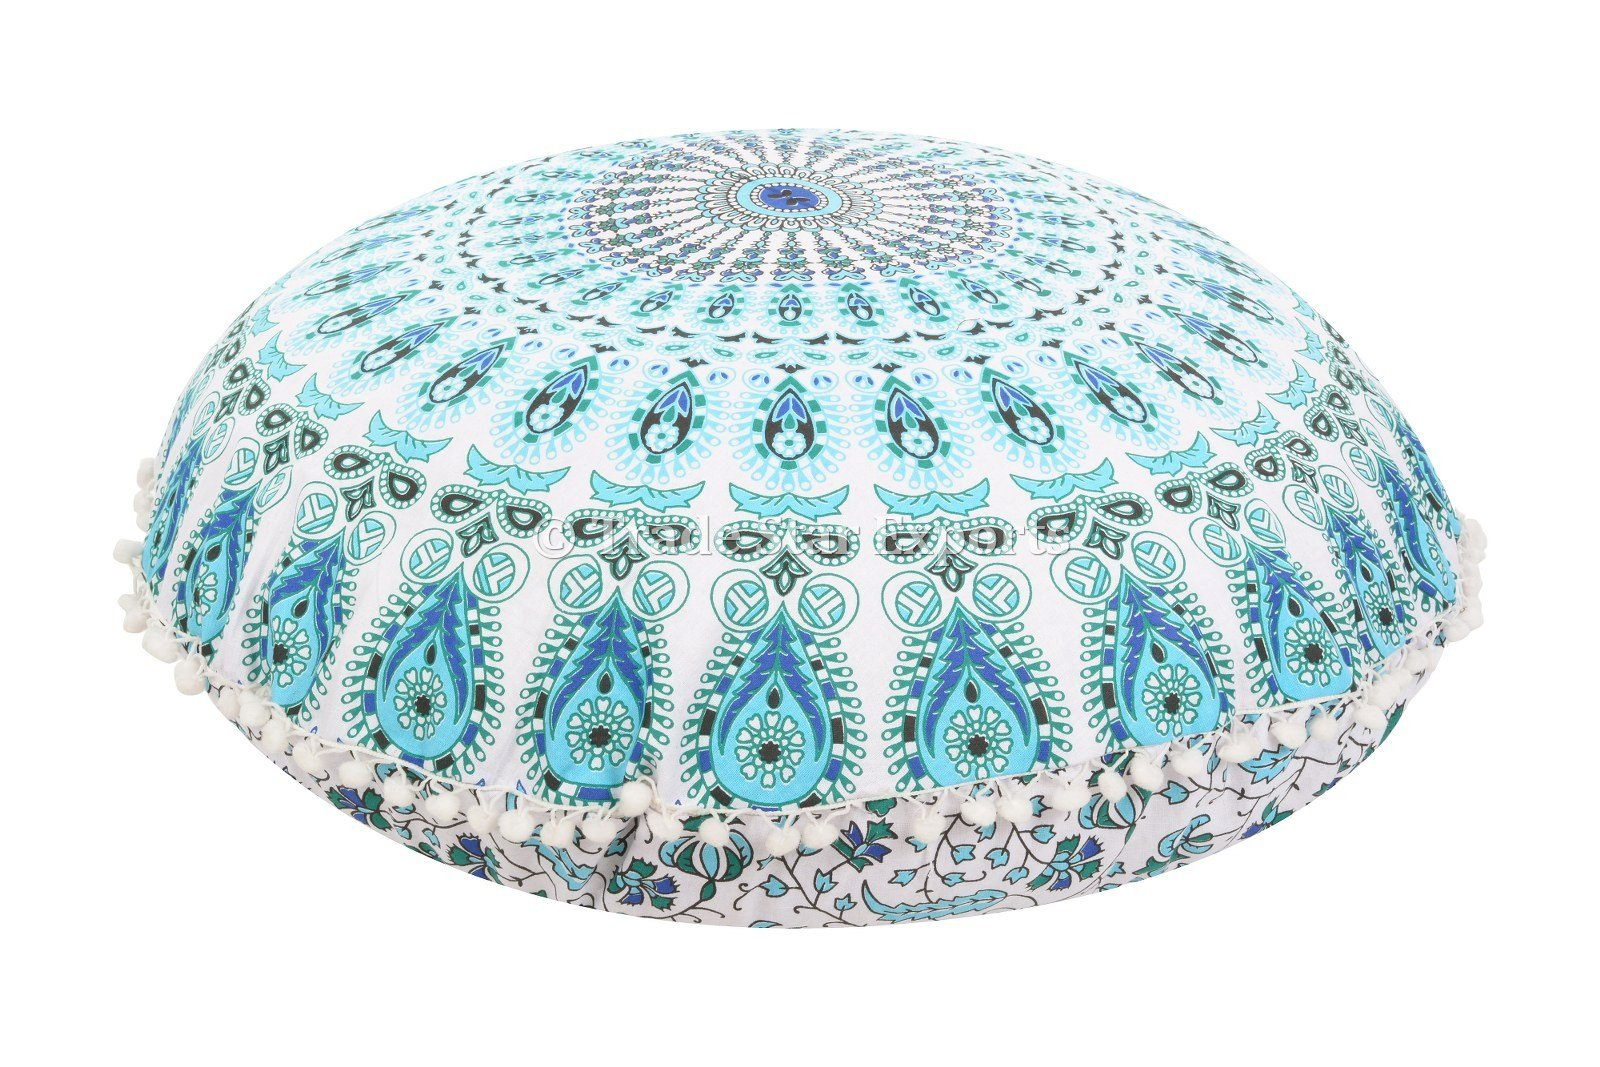 Large 32'' Round Pillow Cover, Decorative Mandala Pillow Sham, Indian Bohemian Ottoman Poufs, Pom Pom Pillow Cases, Outdoor Cushion Cover (Pattern 5)